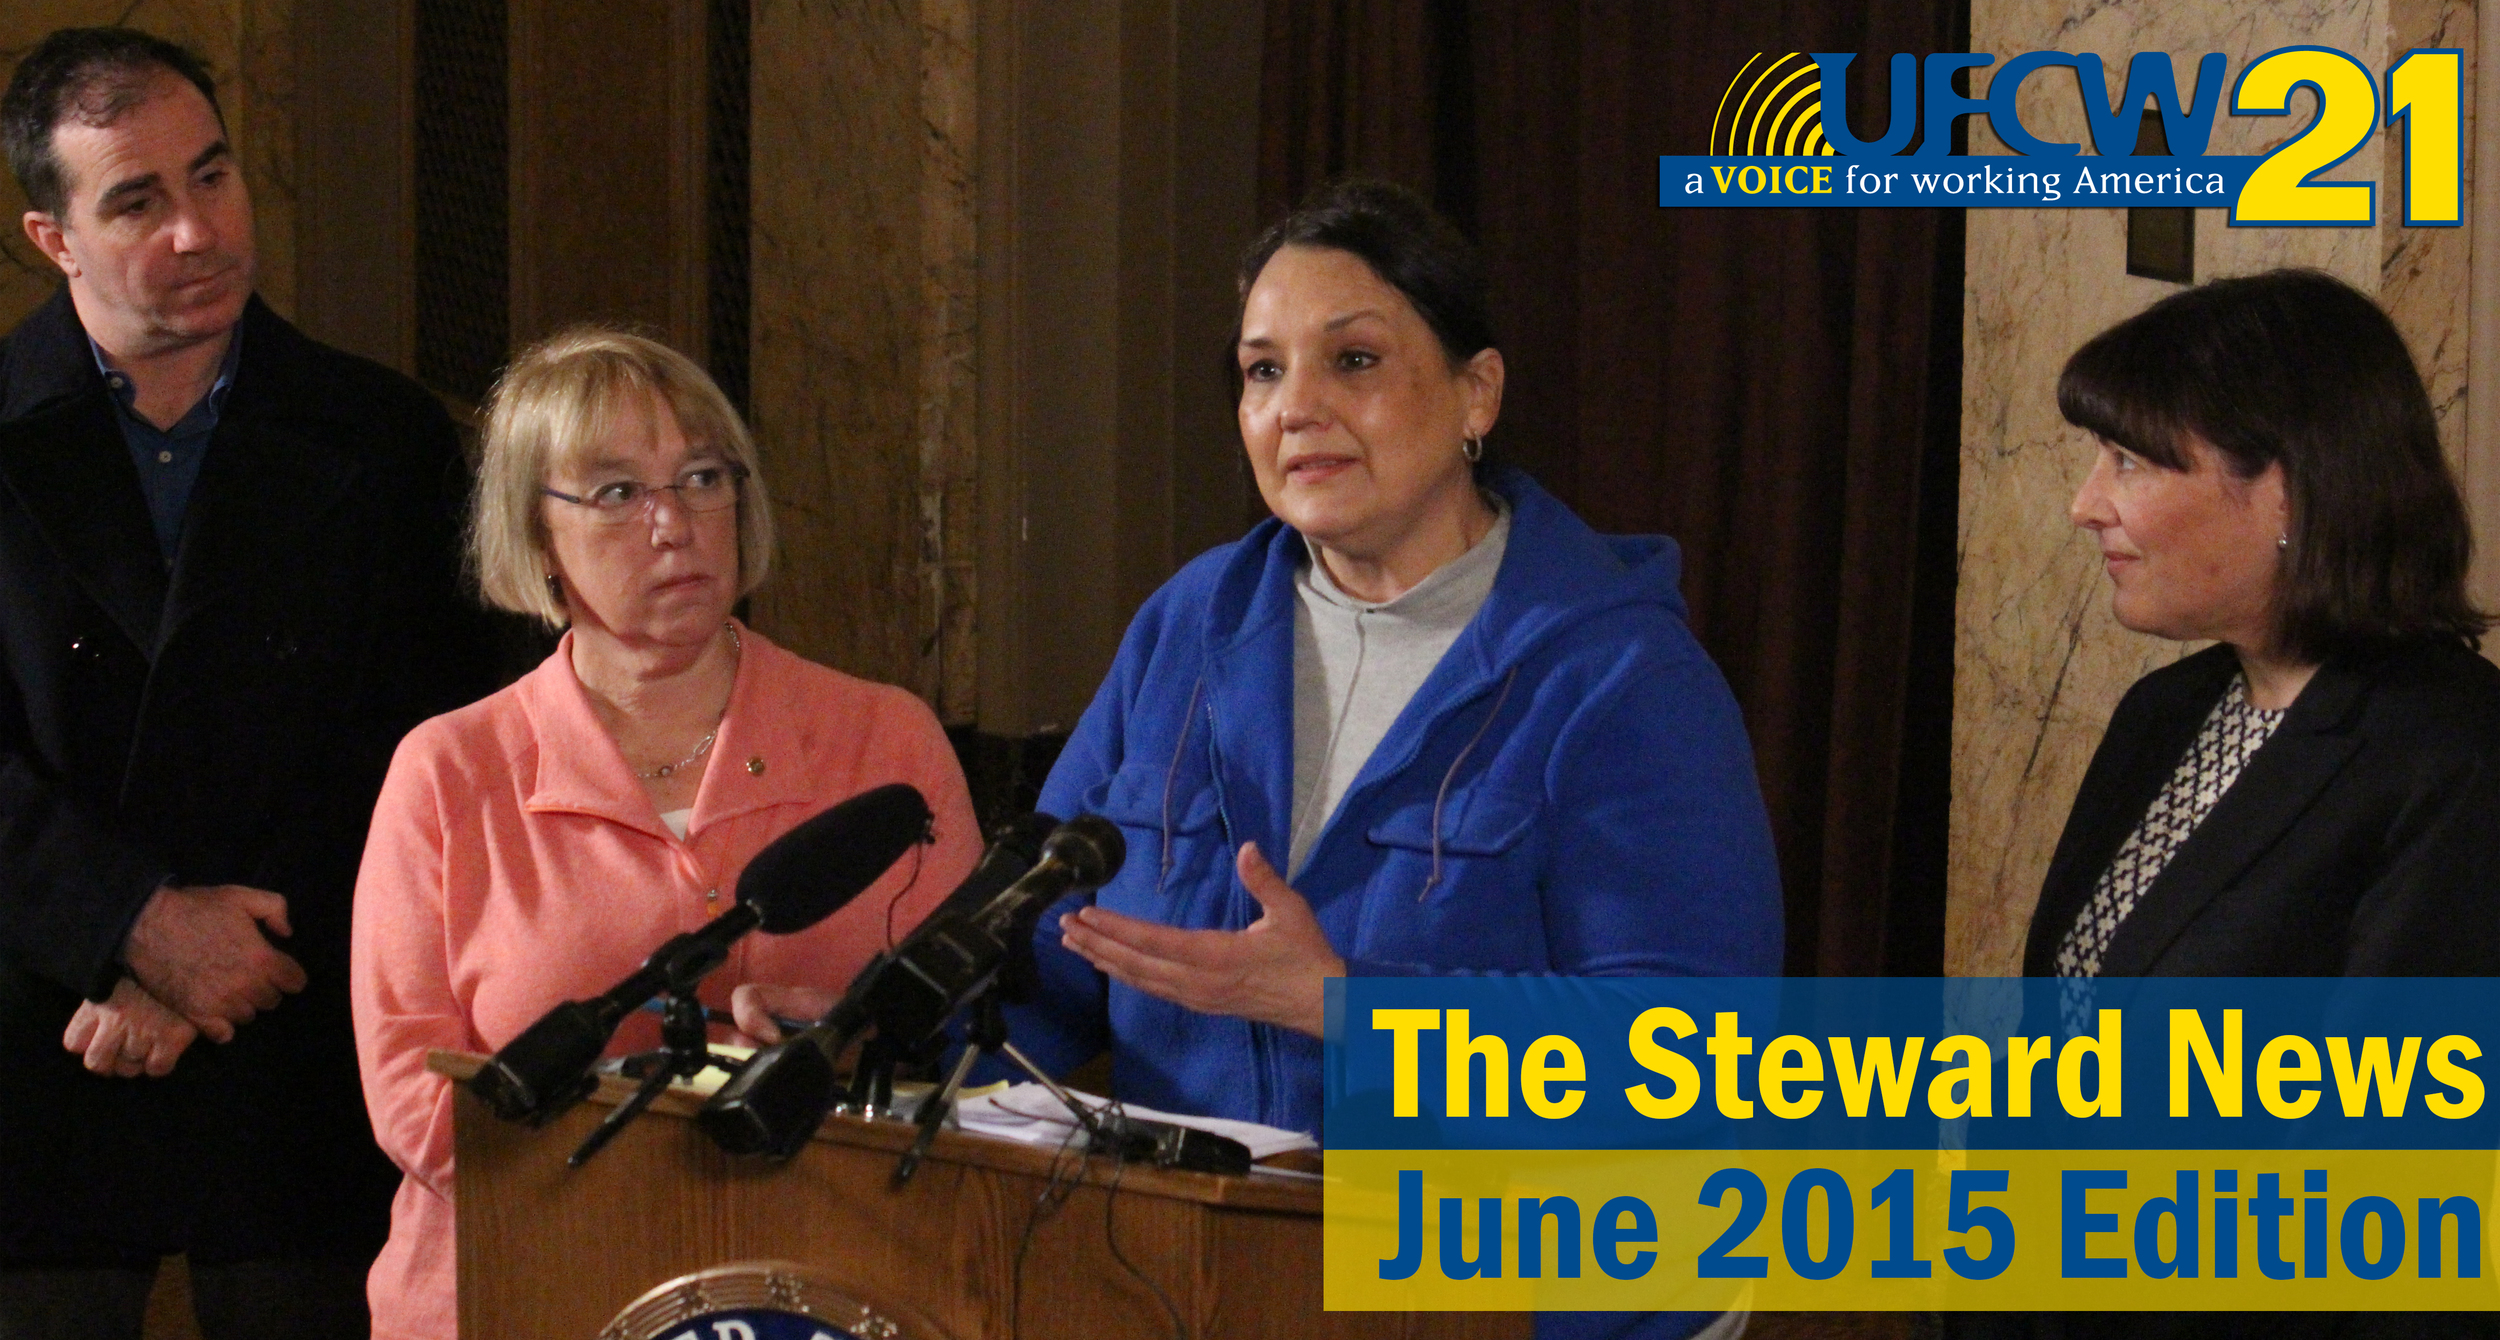 Adriana Calzada, a        Seafood Steward at Fred Meyer, Speaks to reporters on the importance of passing national Paid Sick Leave legislation through Congress while flanked by U.S. Senator Patty Murray and Congresswoman Susan Delbene.